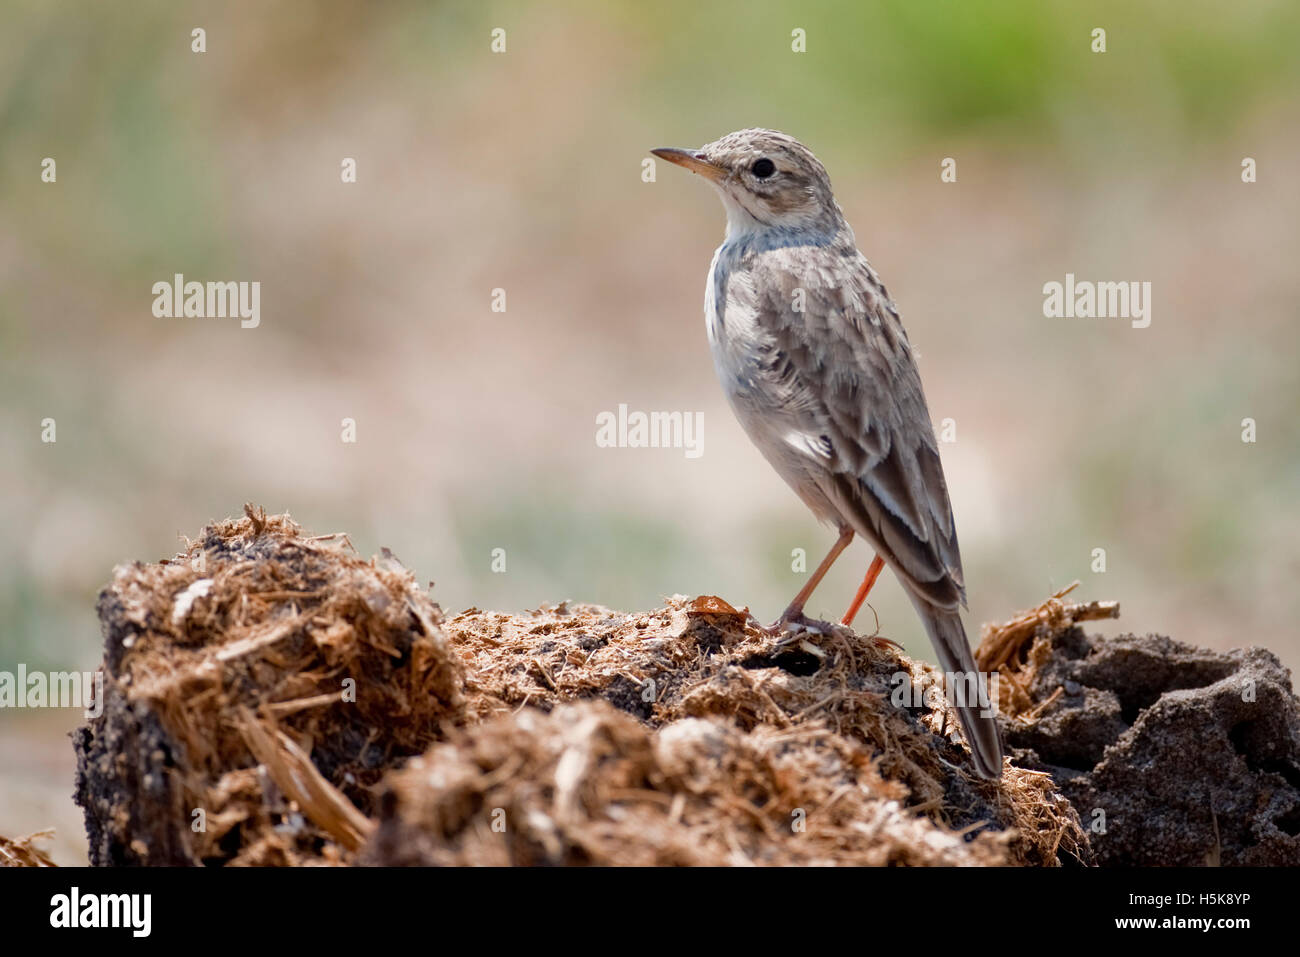 African Pipit (Anthus cinnamomeus), Hwange National Park, Zimbabwe, Africa Stock Photo